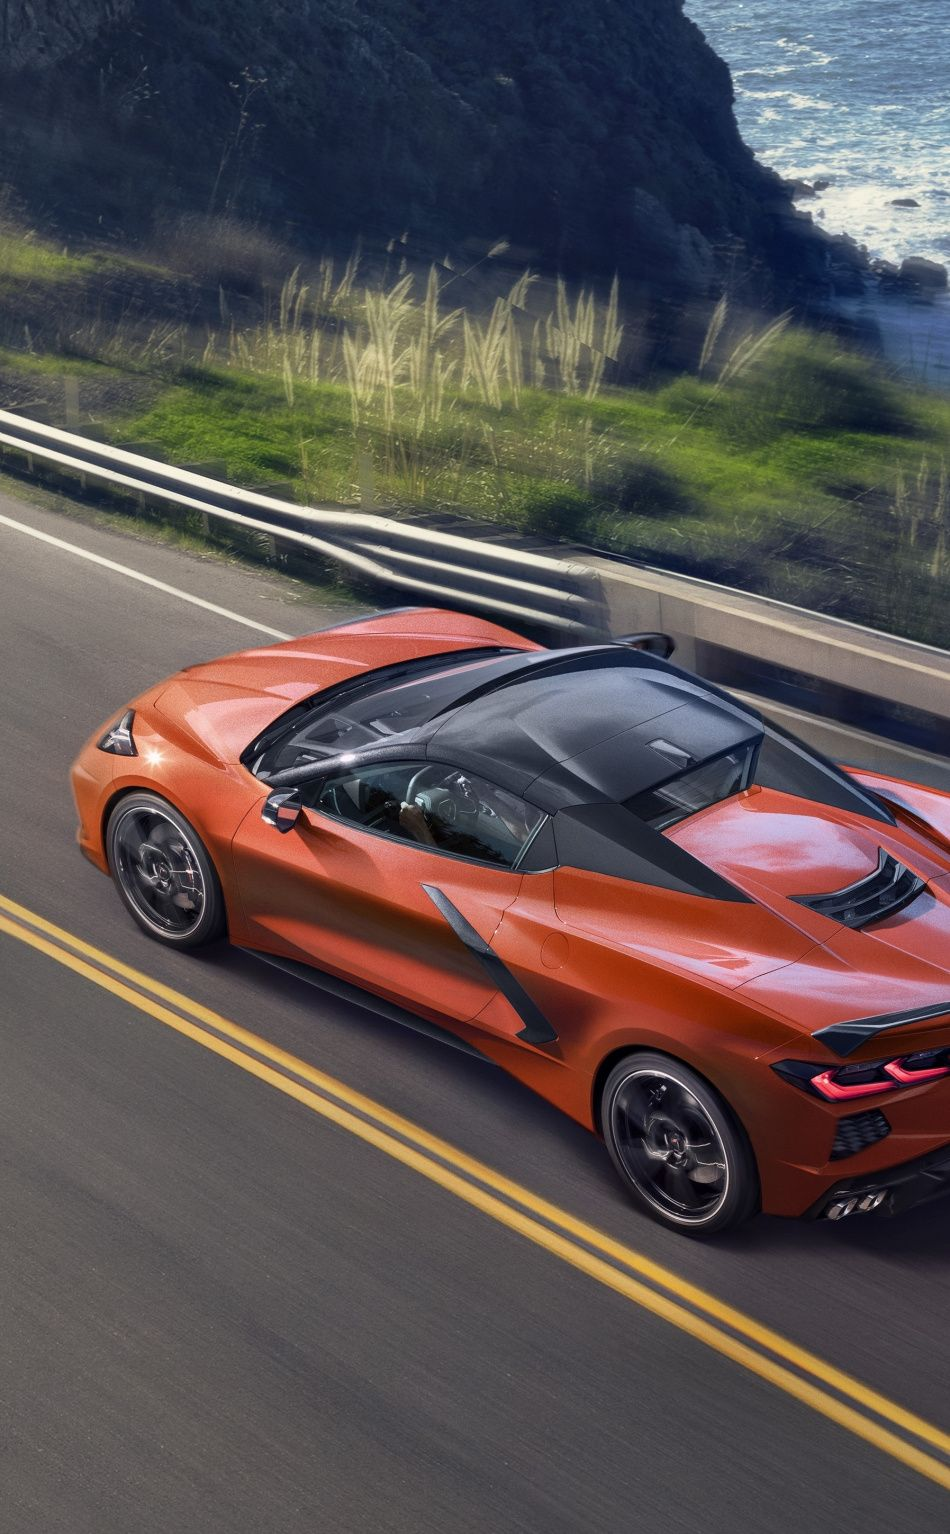 950x1534 Orange Chevrolet Corvette C8 Sports Car 2019 Wallpaper Corvette Chevrolet Corvette Chevrolet